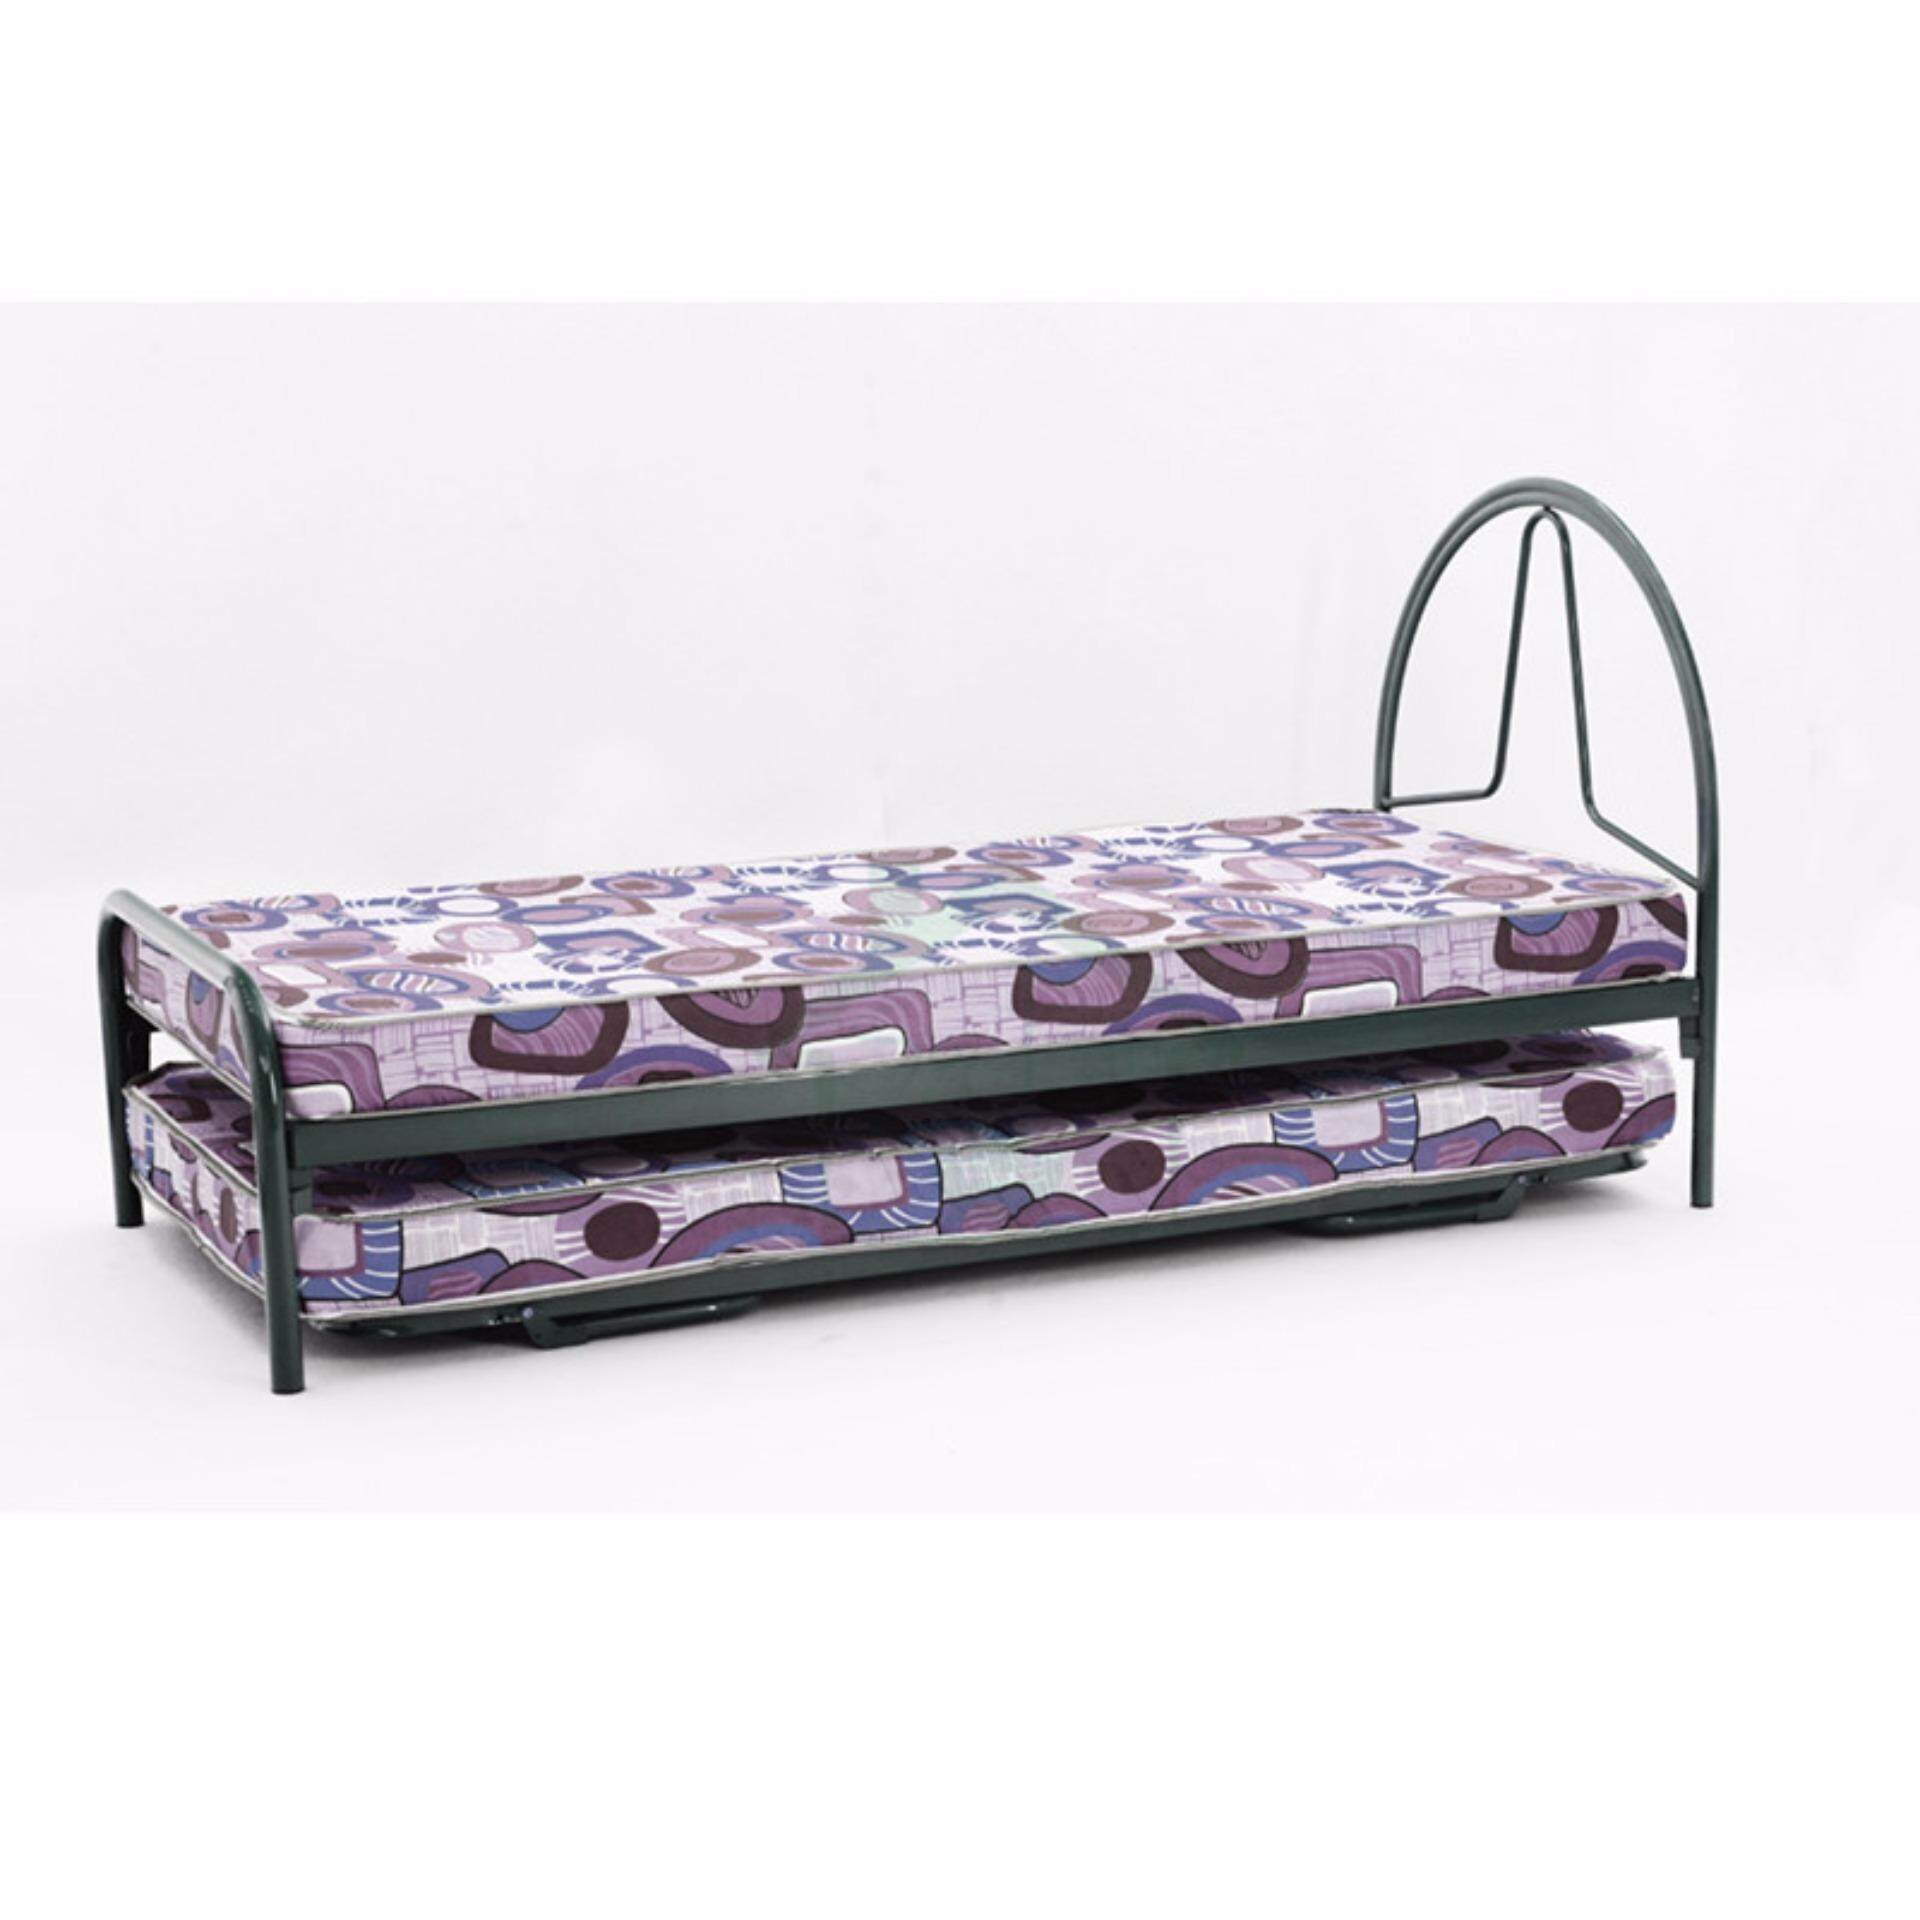 SG TAN 3V Single Metal Bed Frame Modern Design